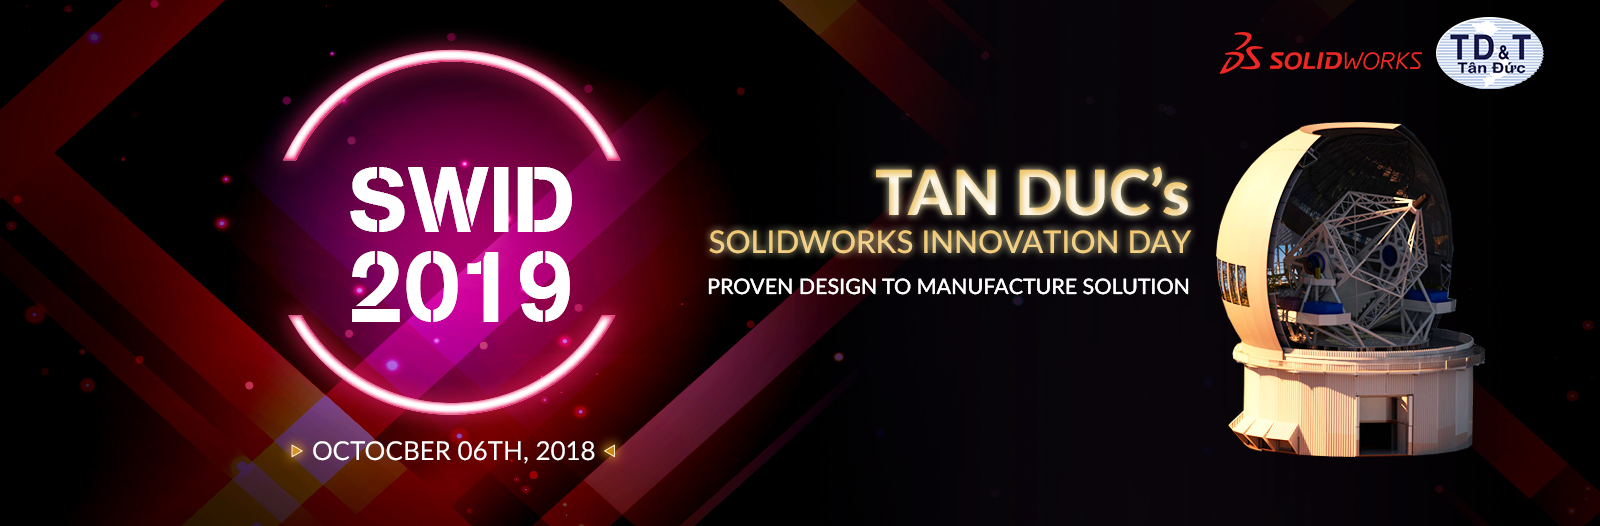 Tân Đức - SolidWorks Innovation Day 2019